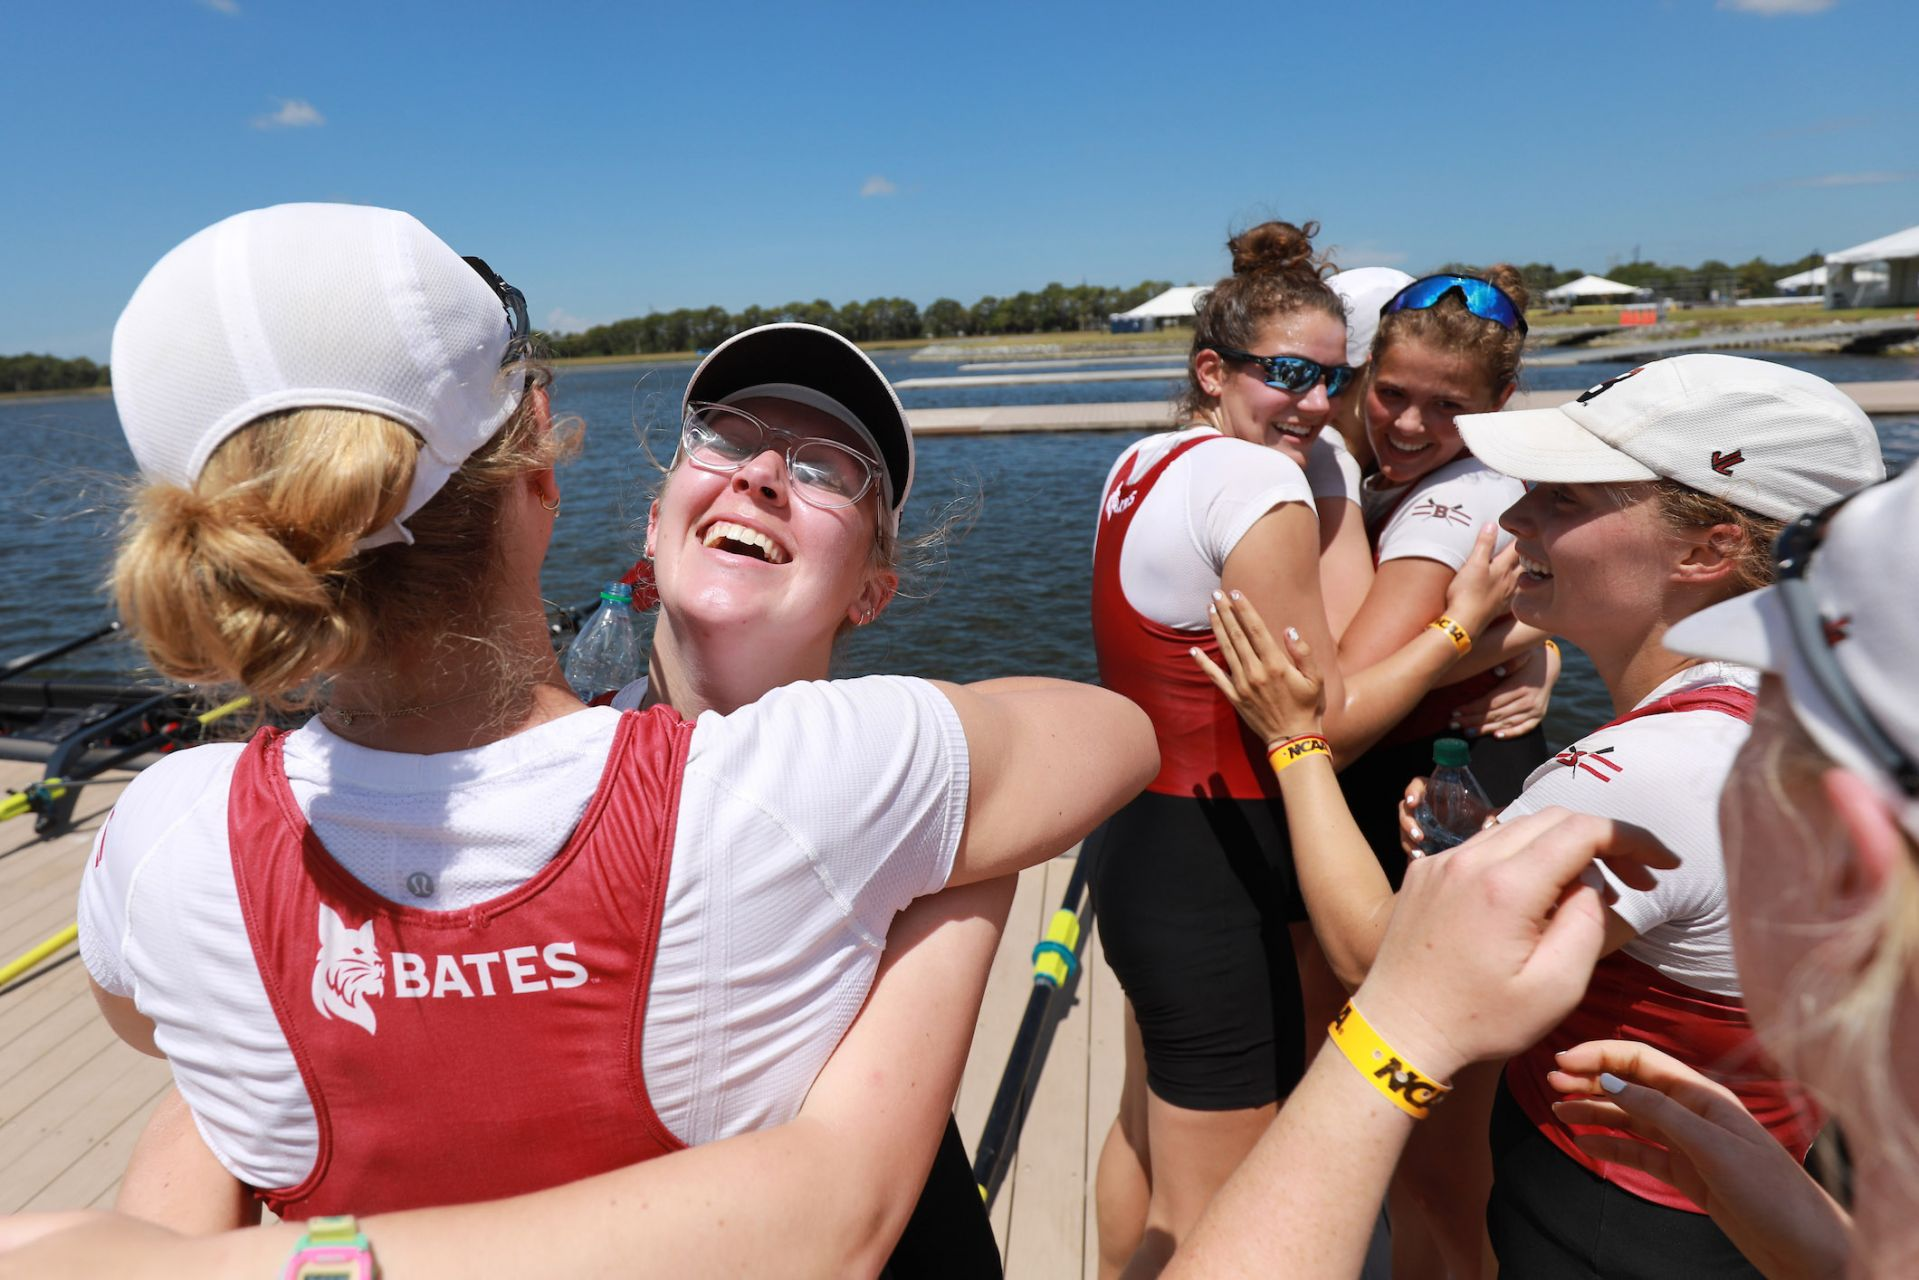 Coxswain Elizabeth Folsom '21 of San Mateo, Calif. led the first varsity eight to a third straight gold medal at NCAAs. (Photo by Justin Tafoya/NCAA Photos via Getty Images)